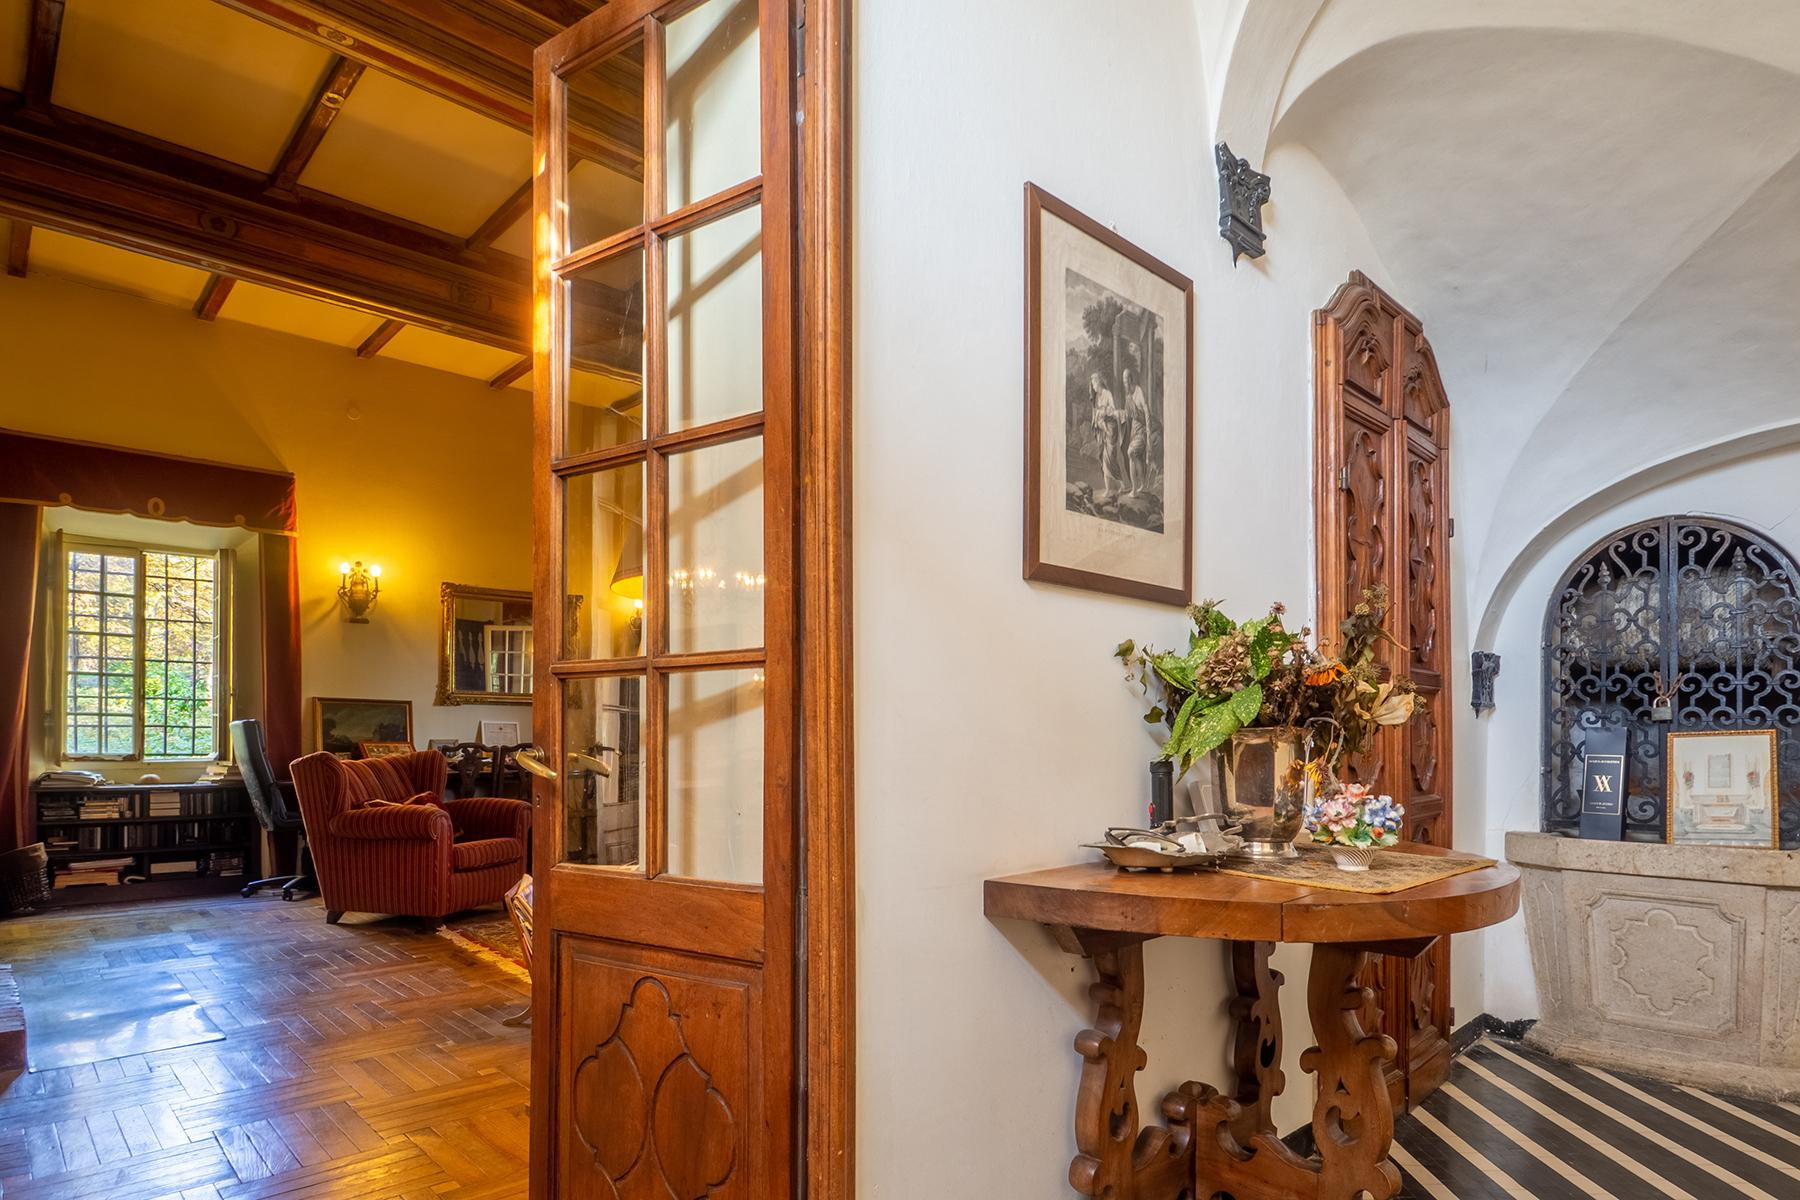 Prestigious historical manor nestled in the Monferrato countryside - 14